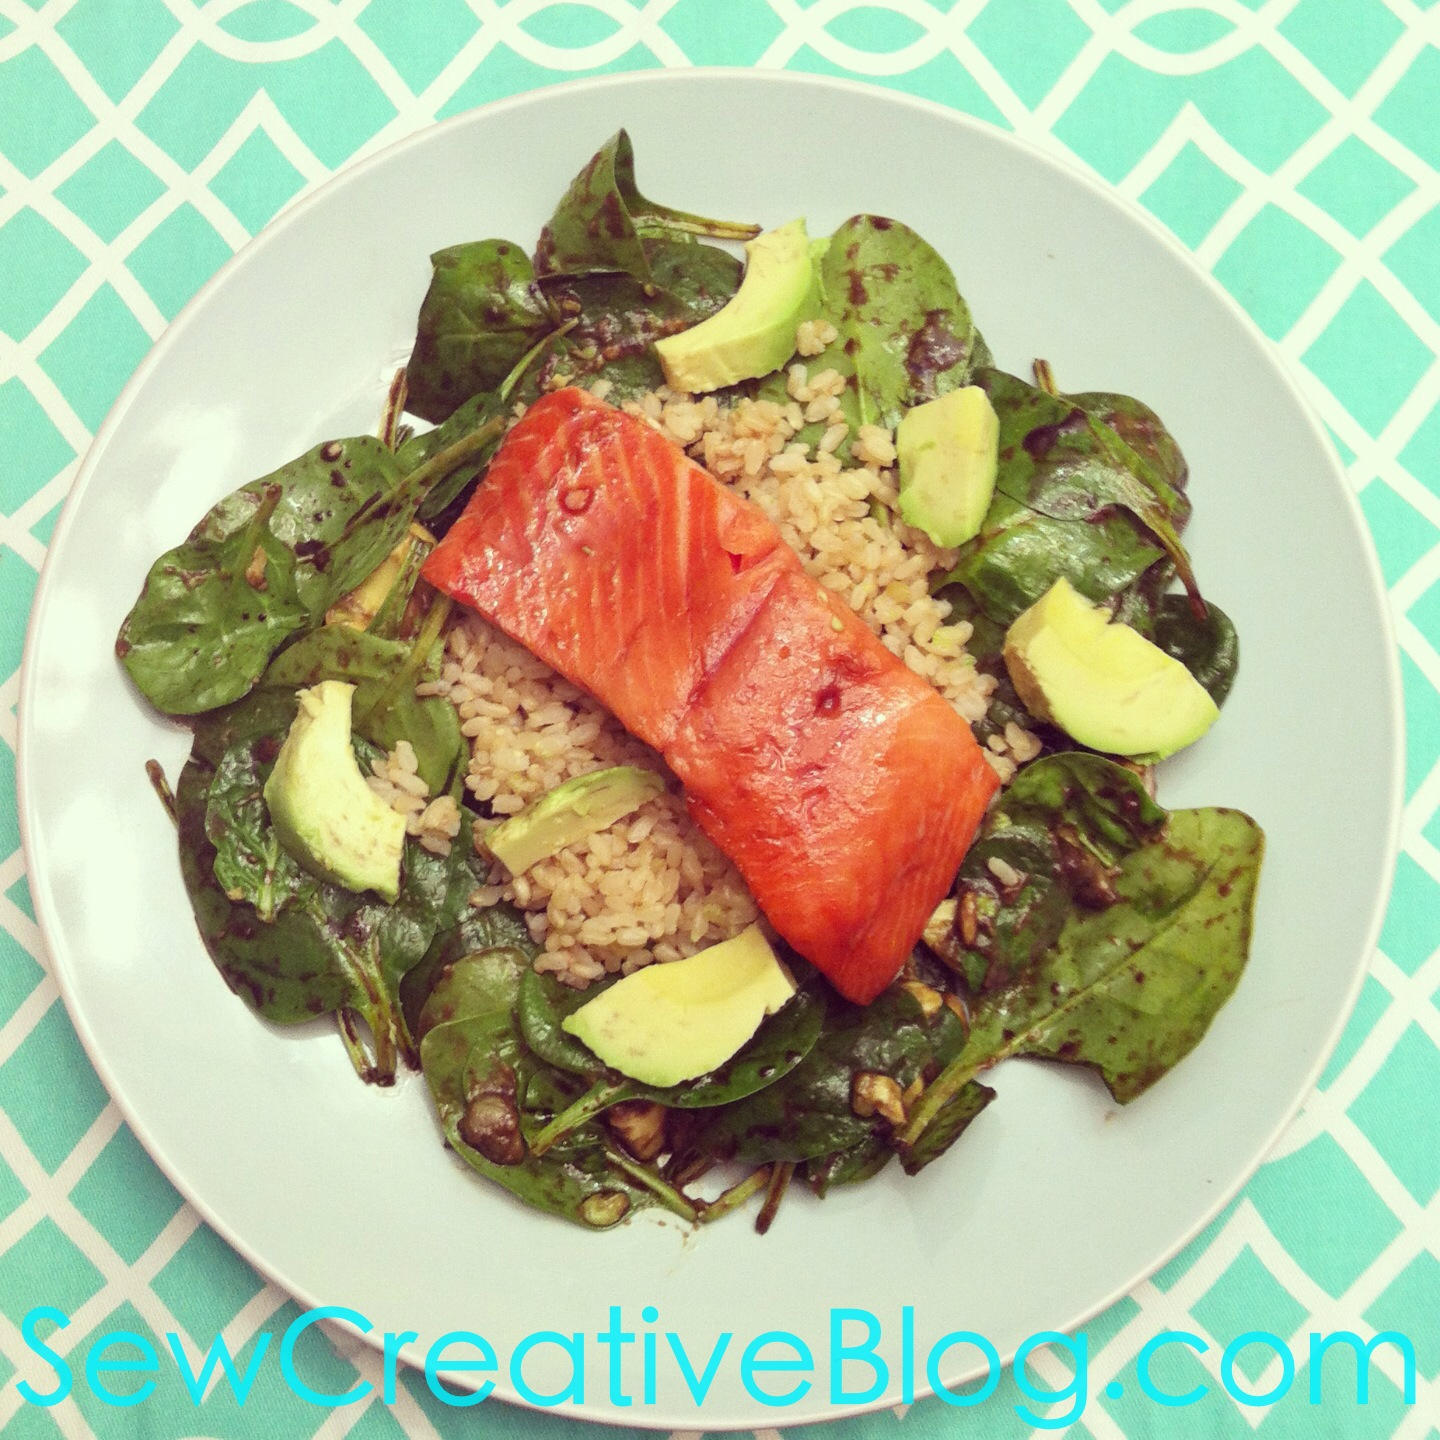 Salmon Spinach and Avocado Salad Recipe with Brown Rice or Quinoa from Sew Creative Blog